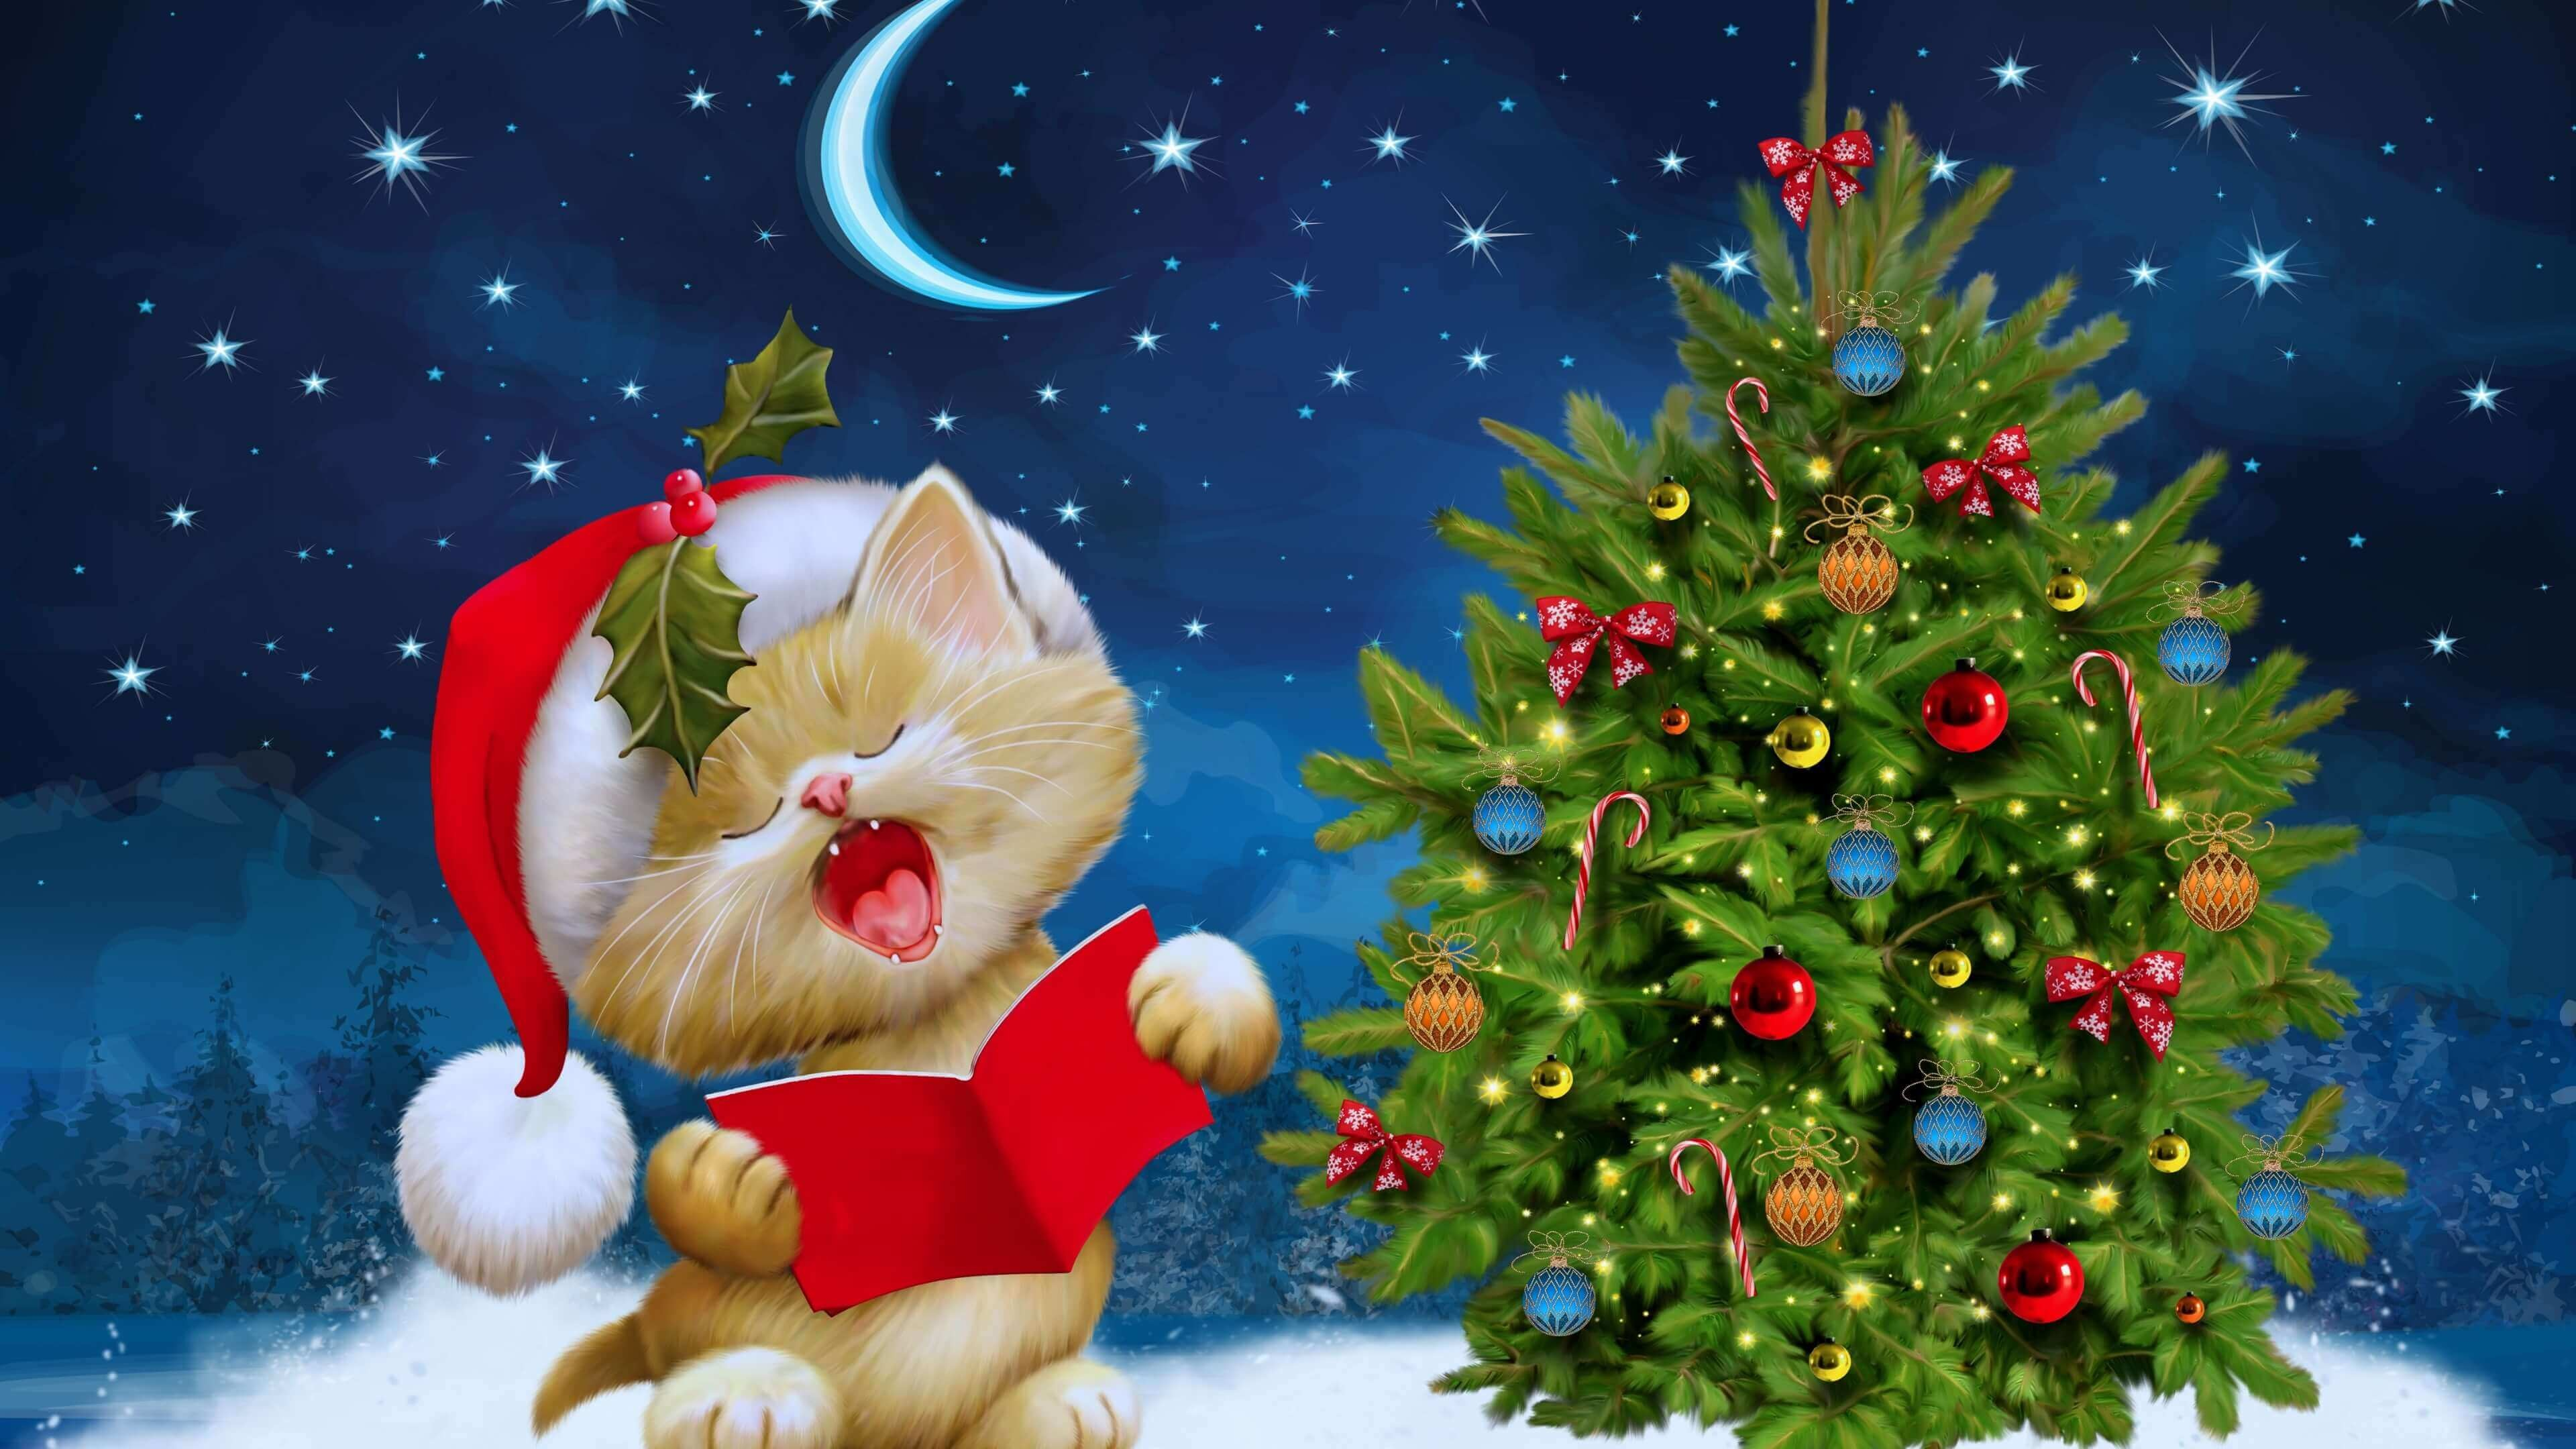 Res: 3840x2160, Beautiful Merry Christmas Kitten Wallpapers